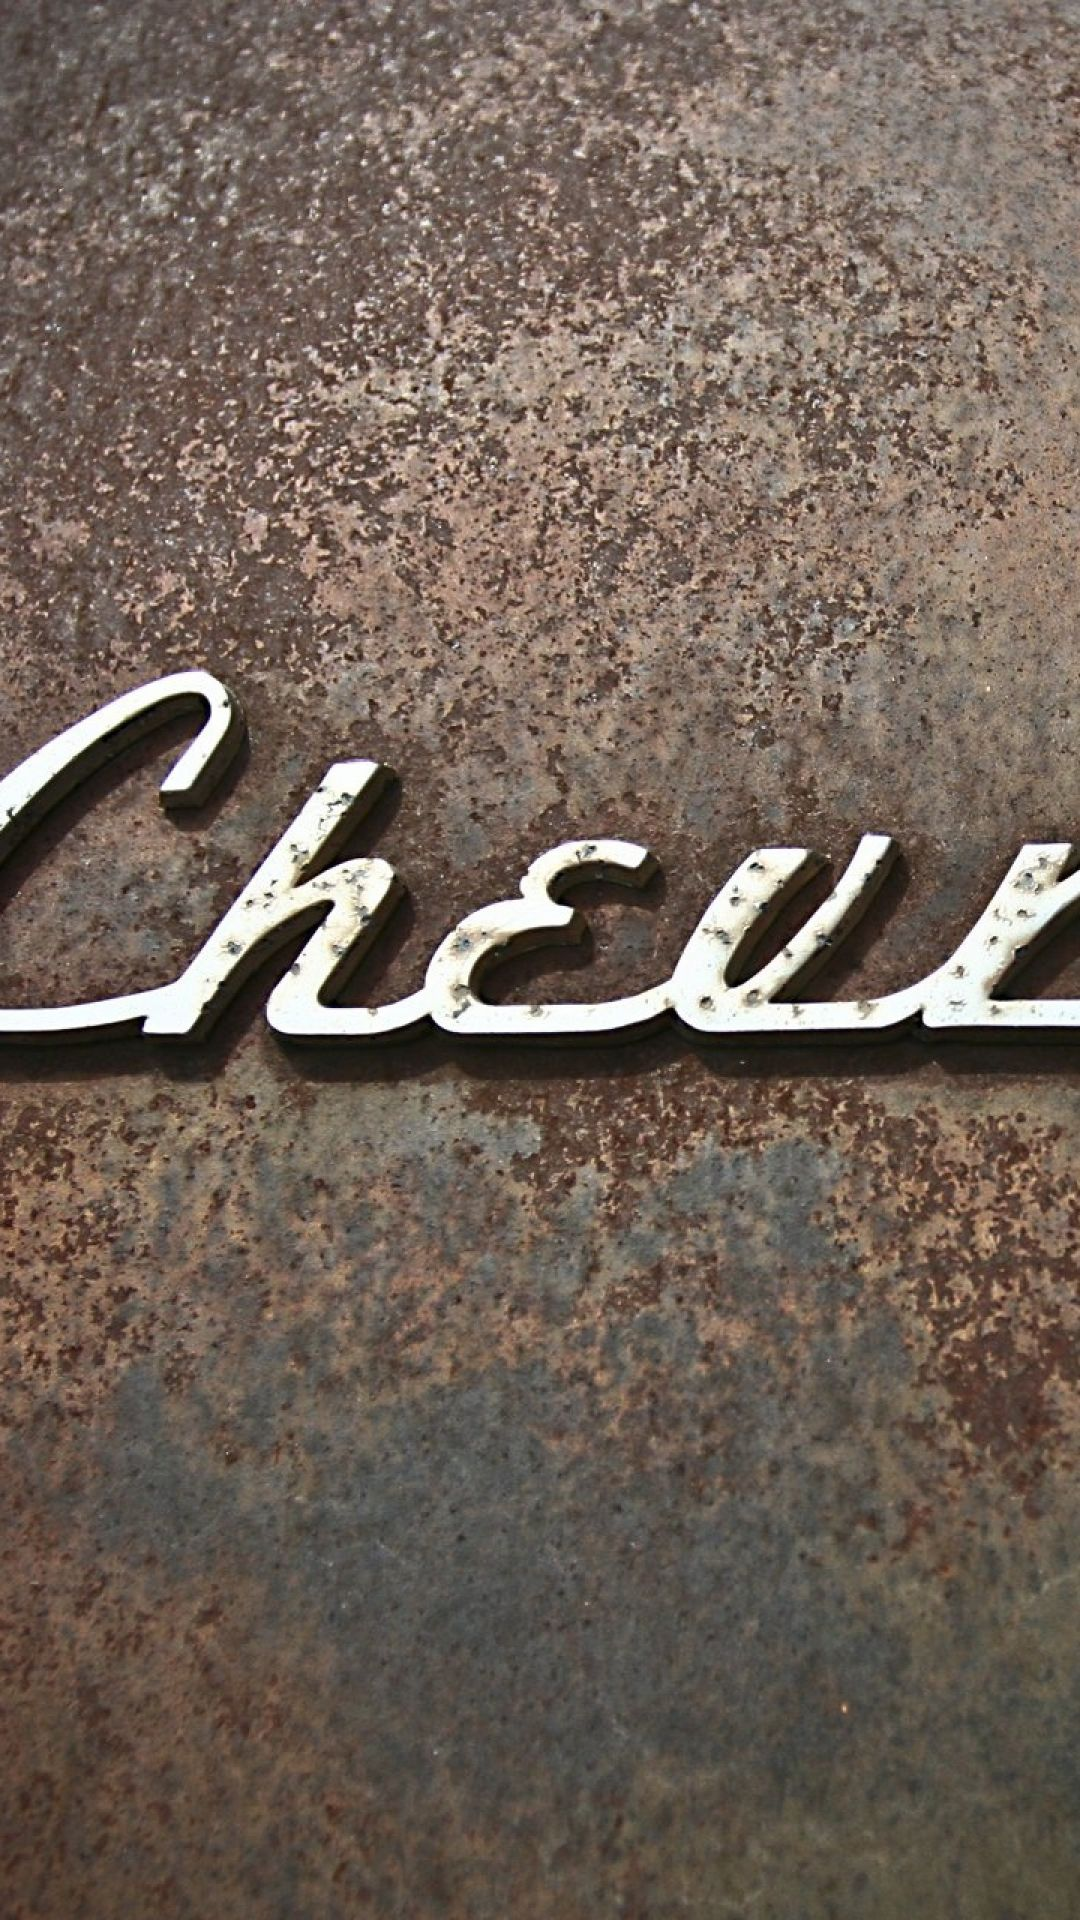 55 Chevy Logo Wallpaper Hd Android Iphone Desktop Hd Backgrounds Wallpapers 1080p 4k 1440x2560 2020